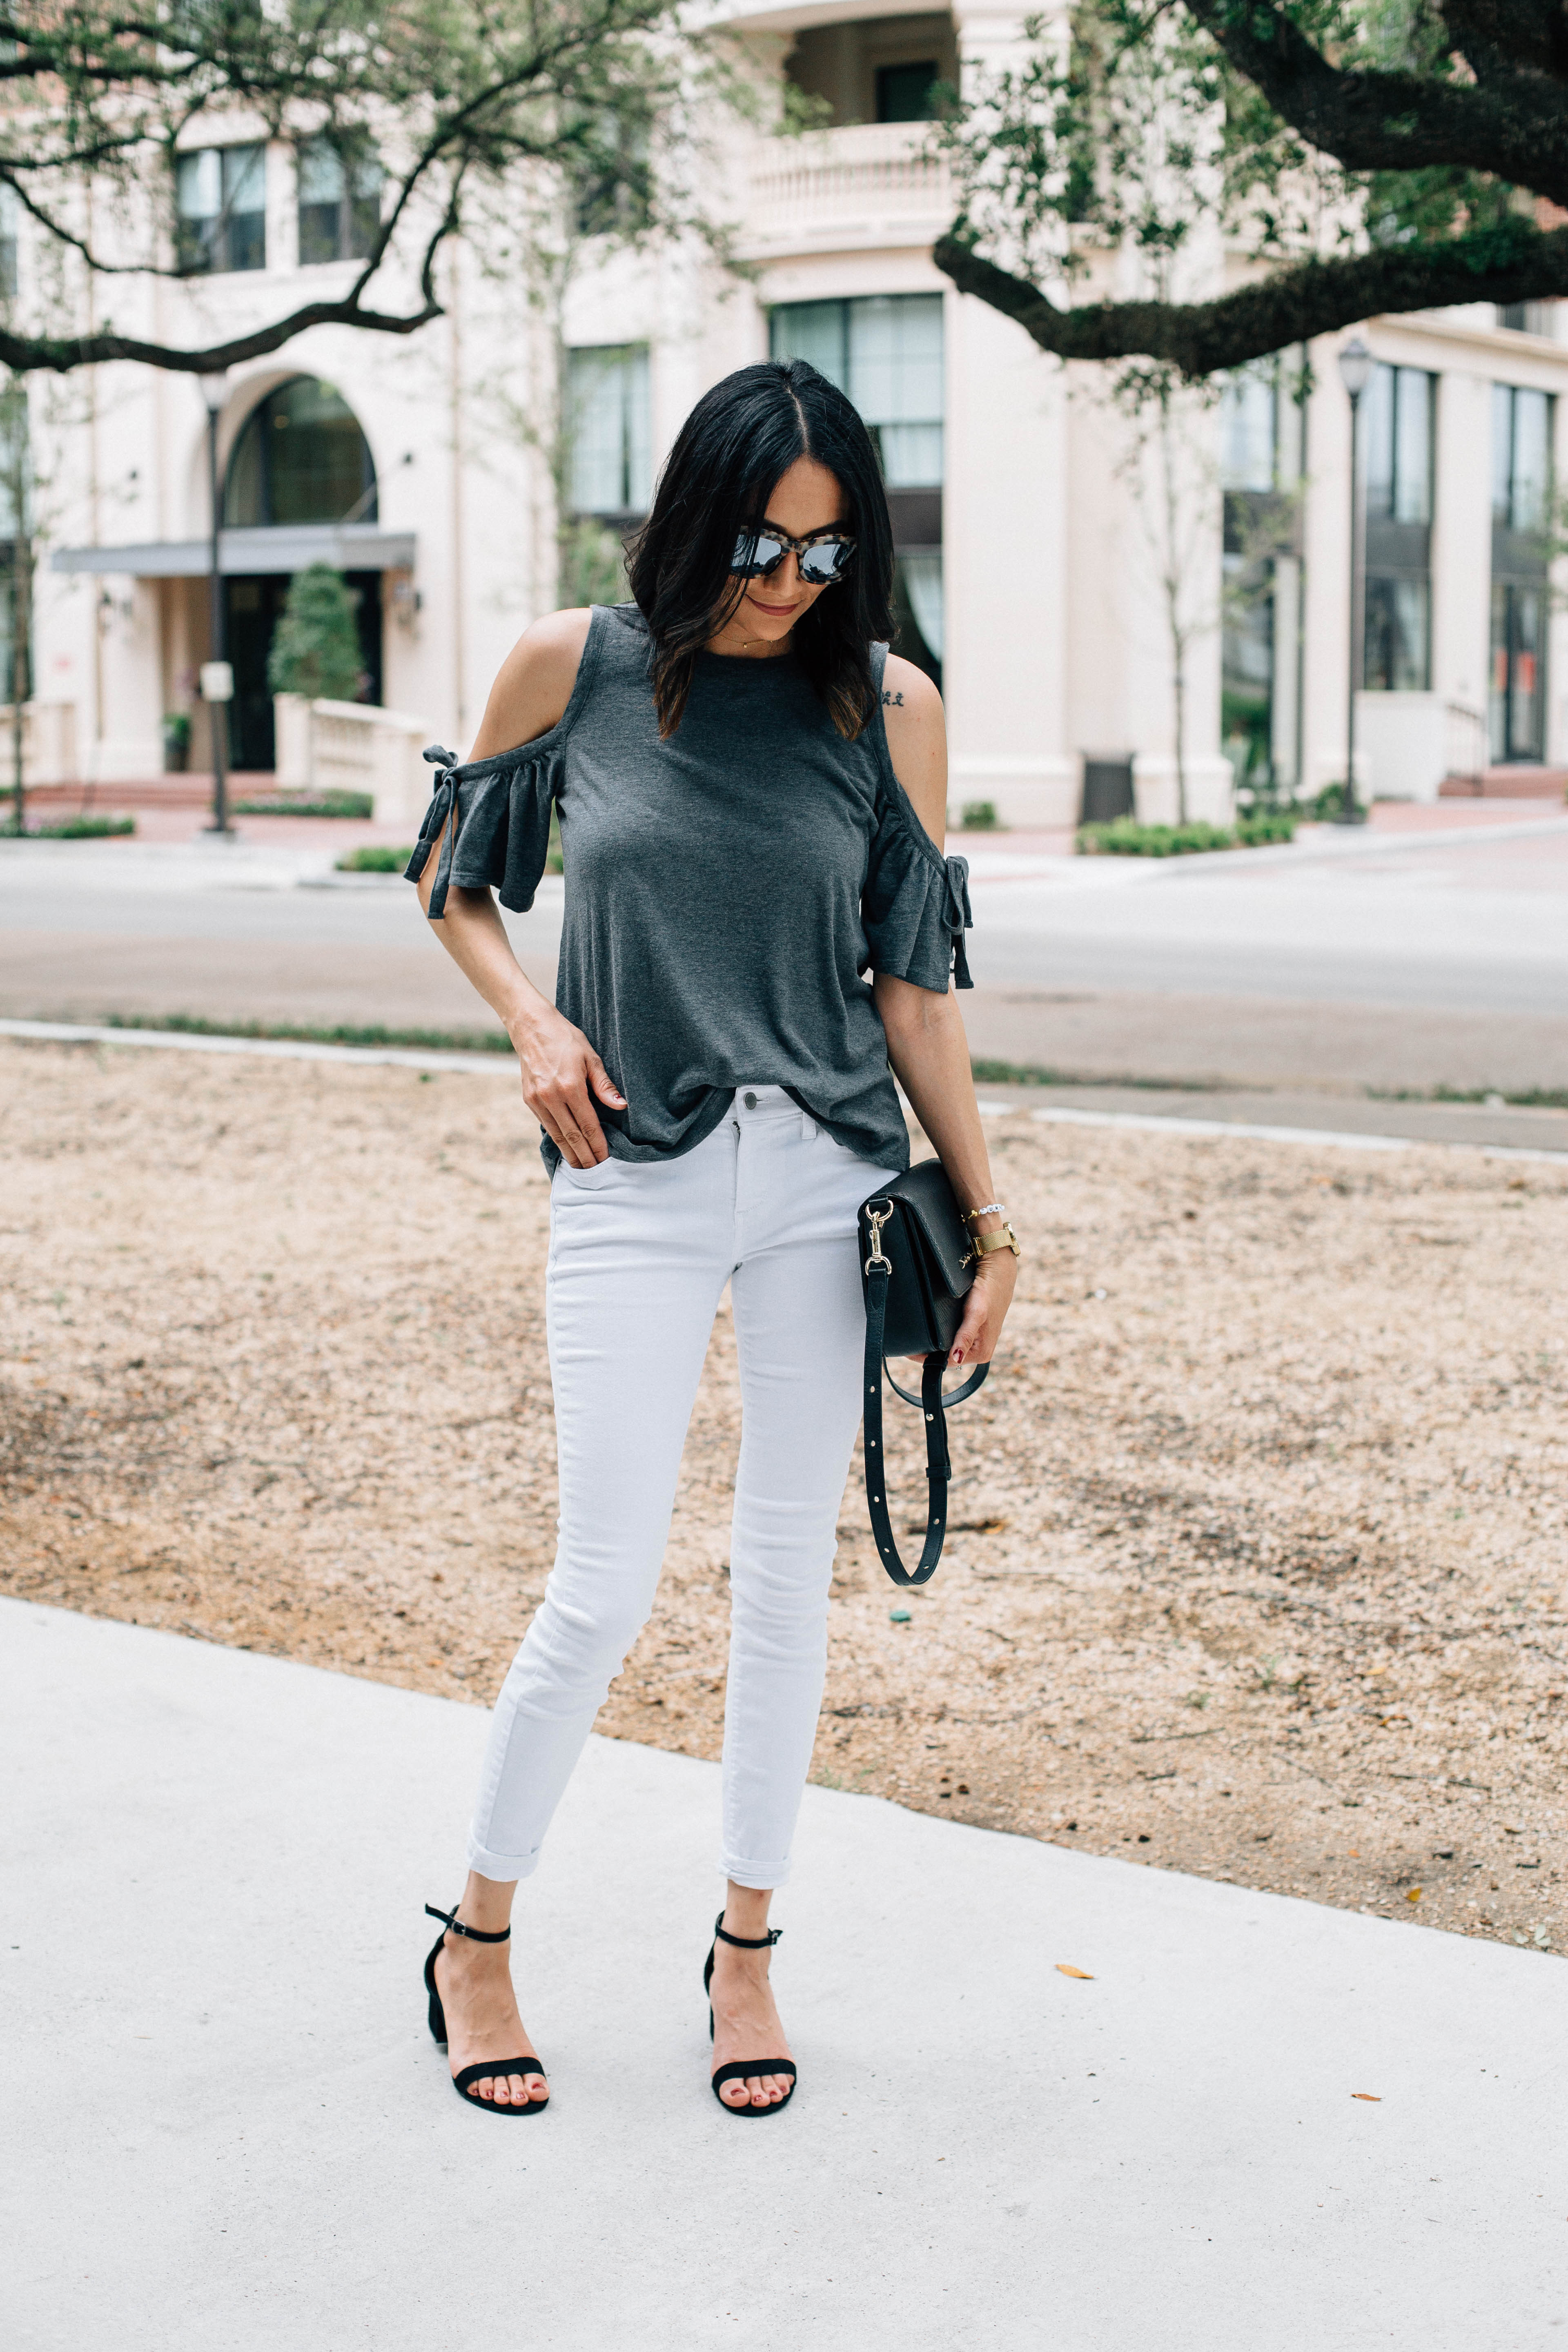 Lifestyle blogger Lilly Beltran of Daily Craving in a grey cold shoulder top and white jeans